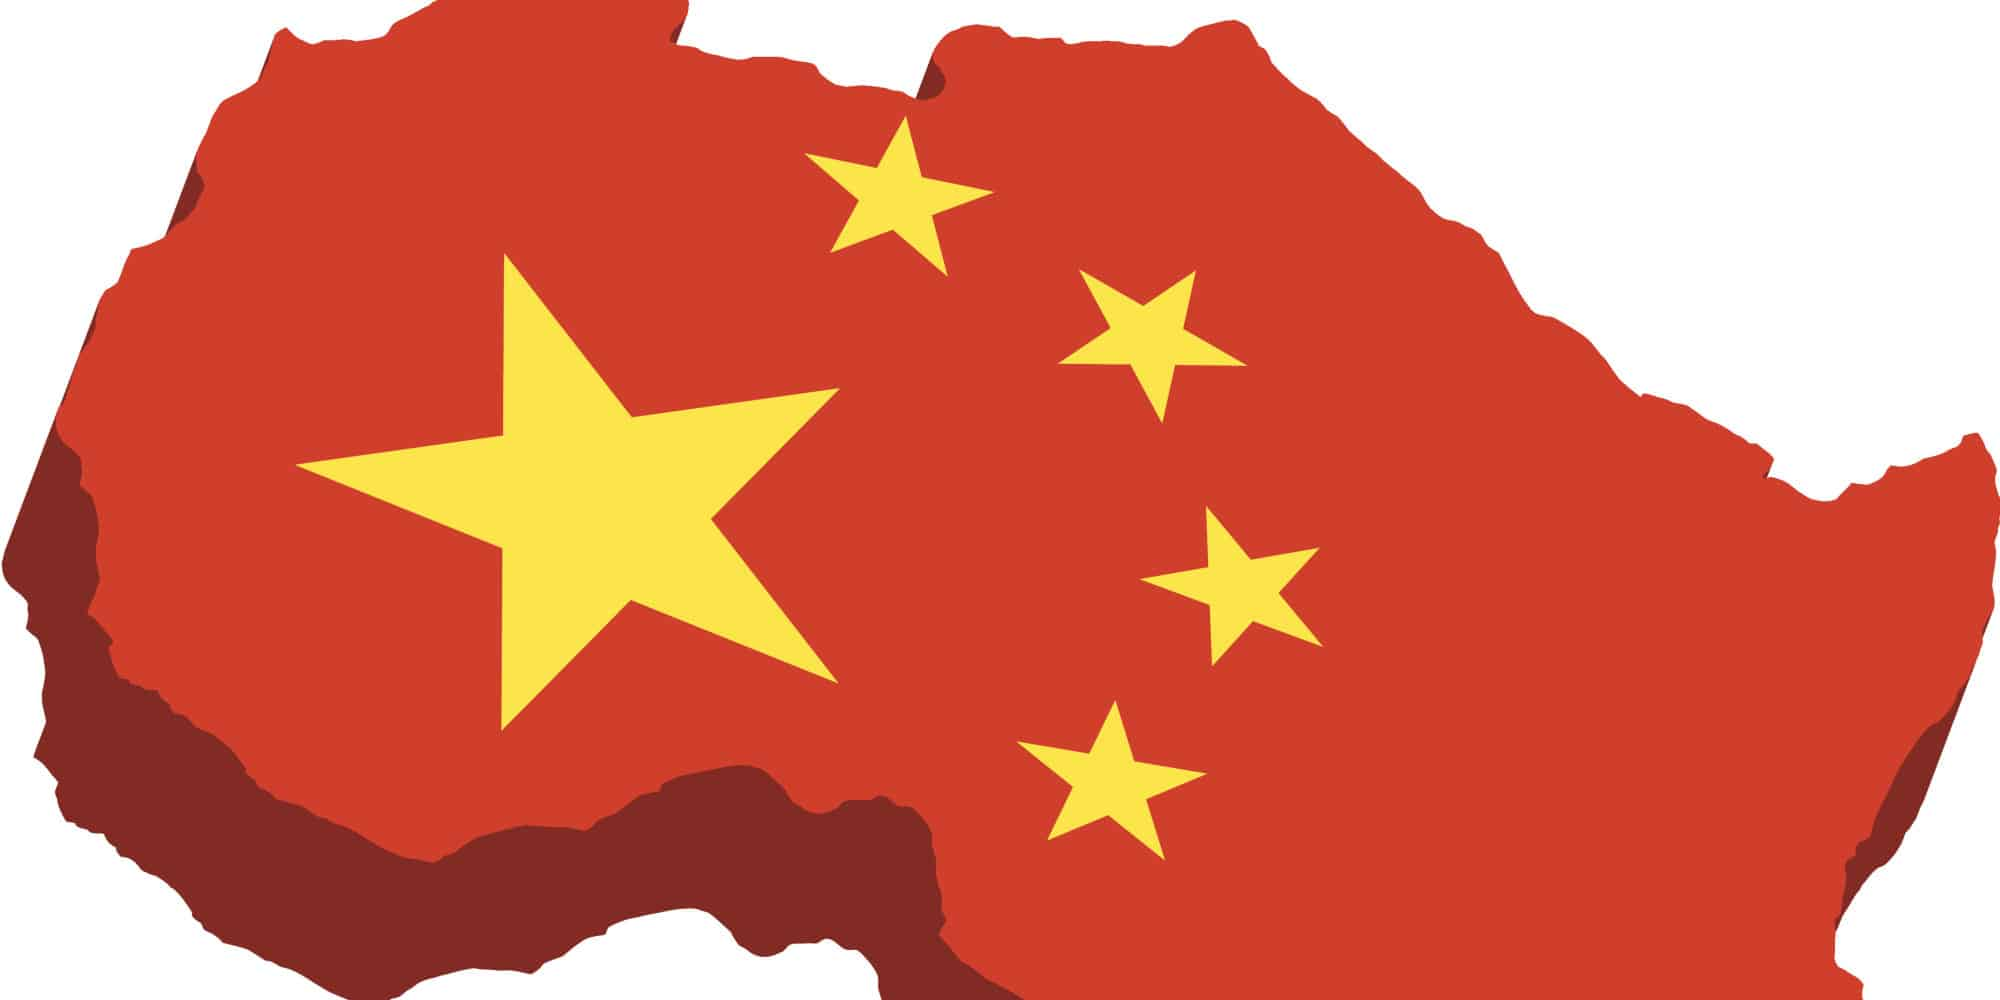 Trump's Insults Will Nudge African Nations Closer To China (NPR)